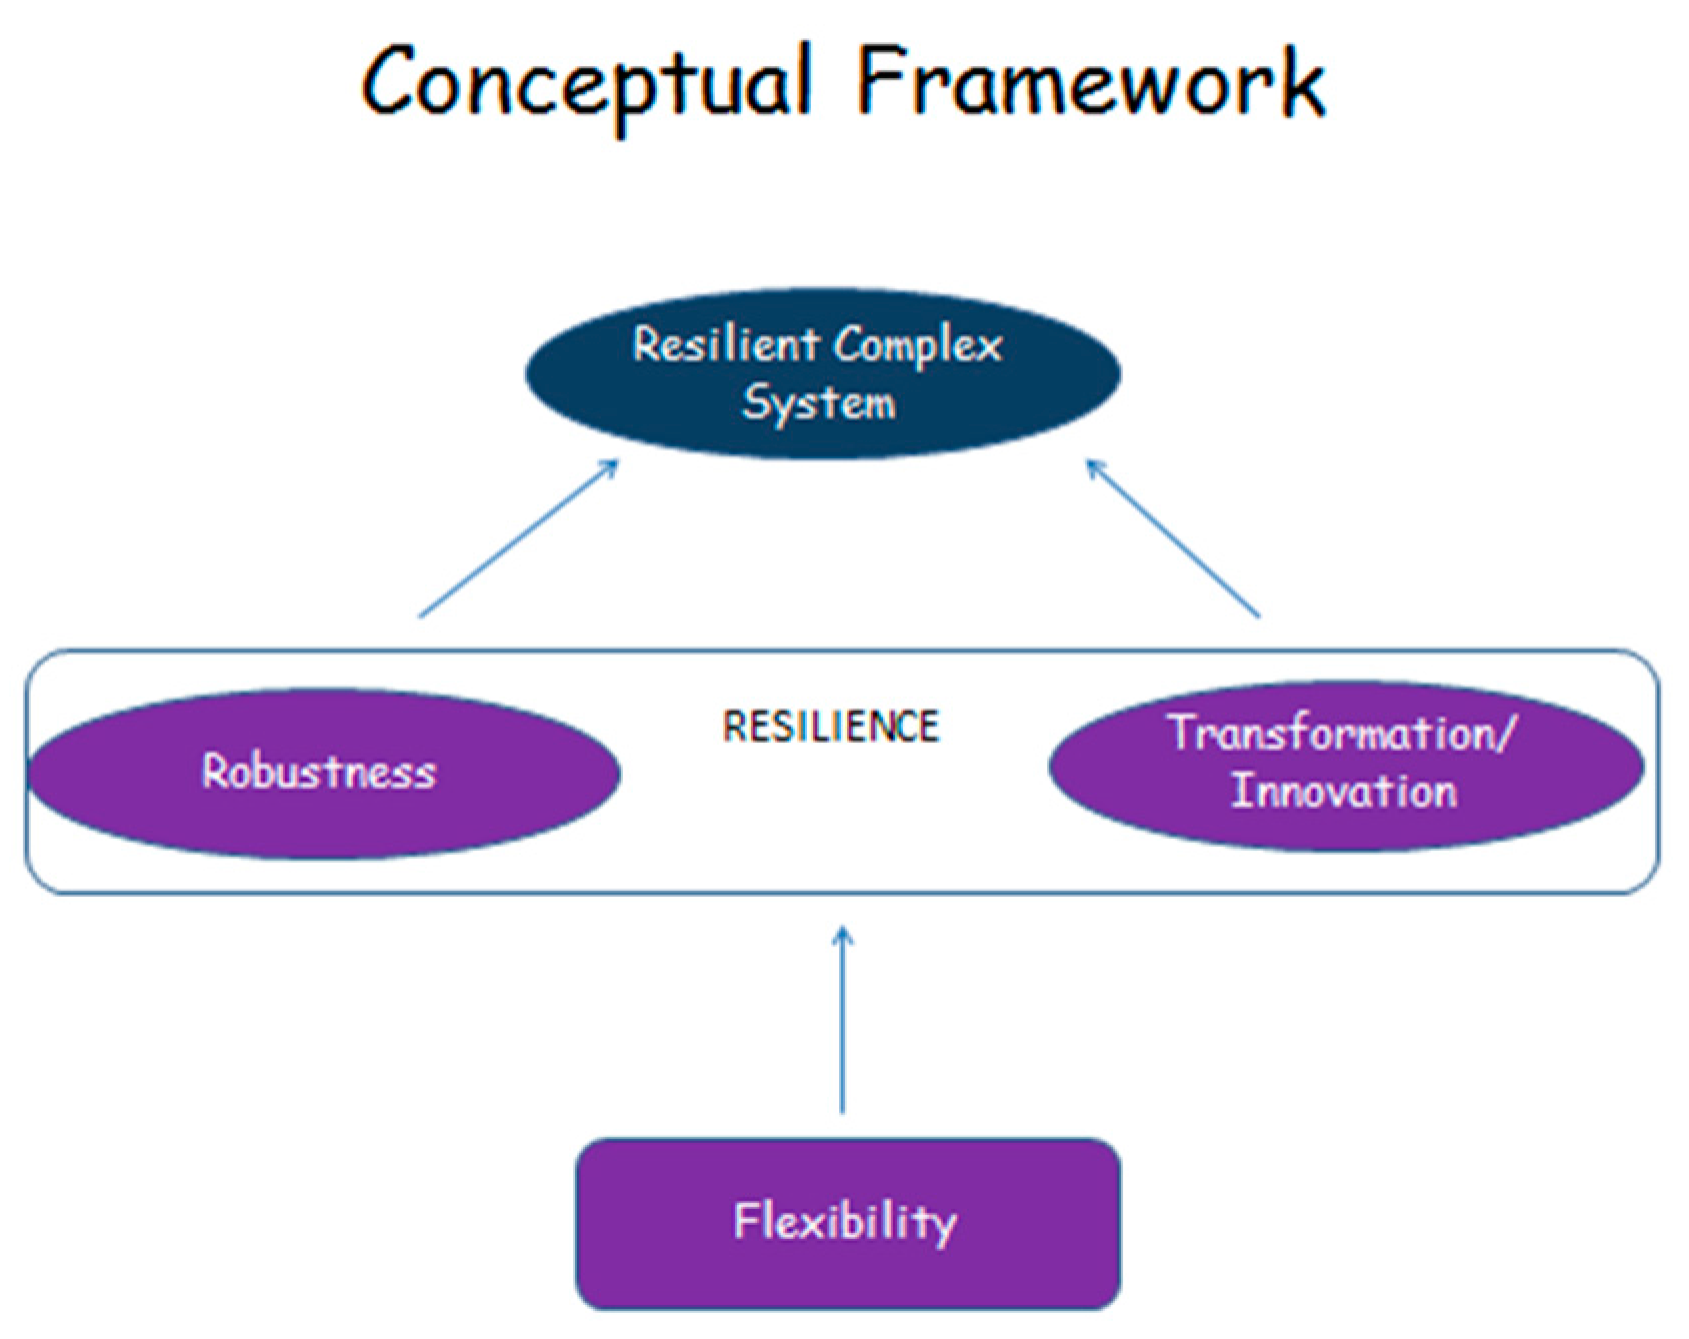 accounting conceptual framework essay Blog what are the disadvantages of conceptual framework assisting the standard of accounting conceptual framework involvement college essays too, you can log.